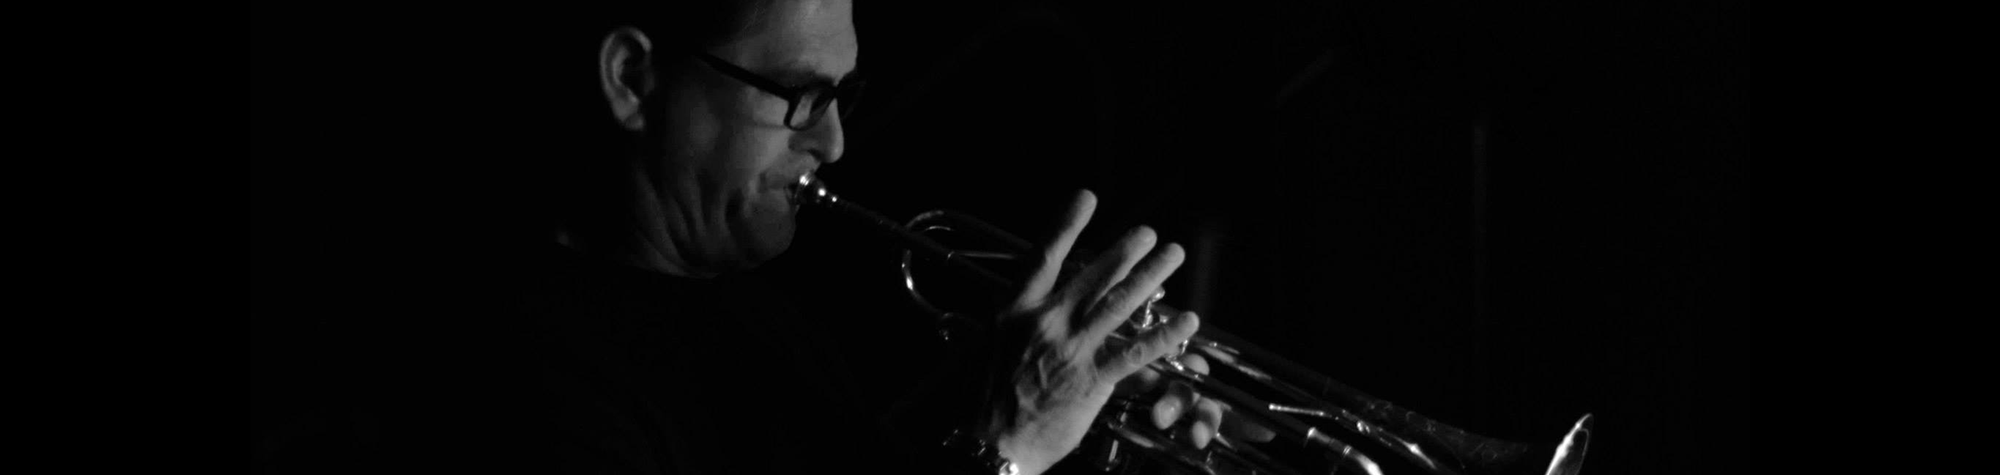 Karl Sievers Trumpet Interview – The Other Side of the Bell #82